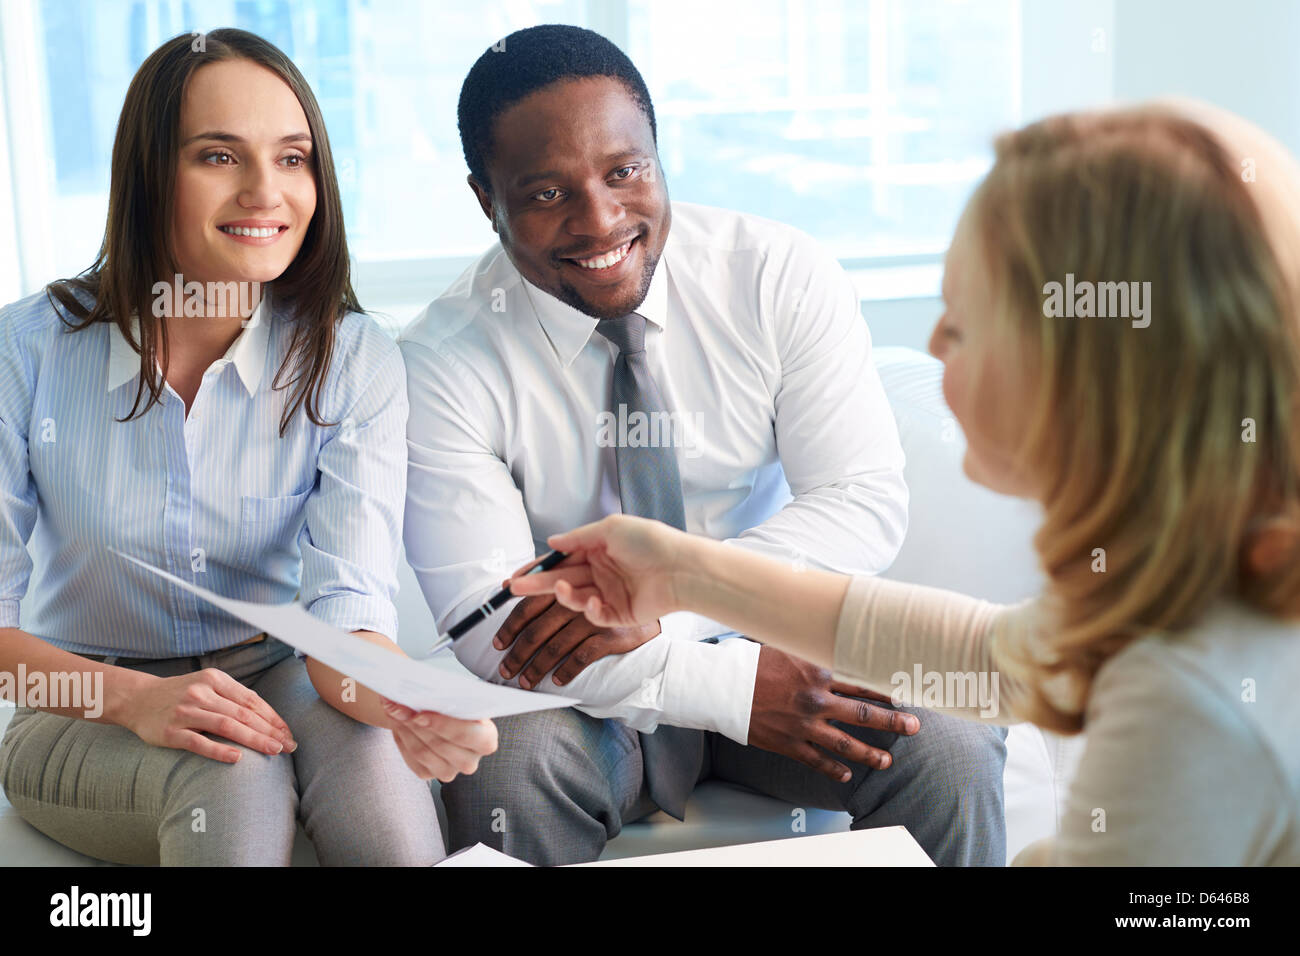 Image of confident colleagues looking at their business partner offering them to sign paper at meeting - Stock Image